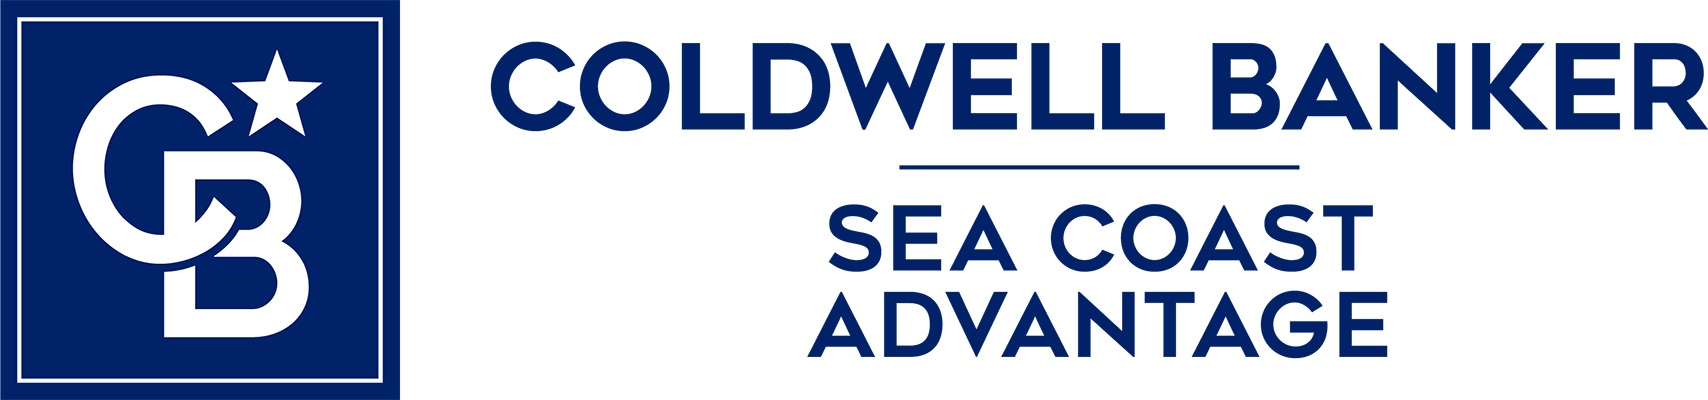 Ophard Willis - Coldwell Banker Sea Coast Advantage Realty